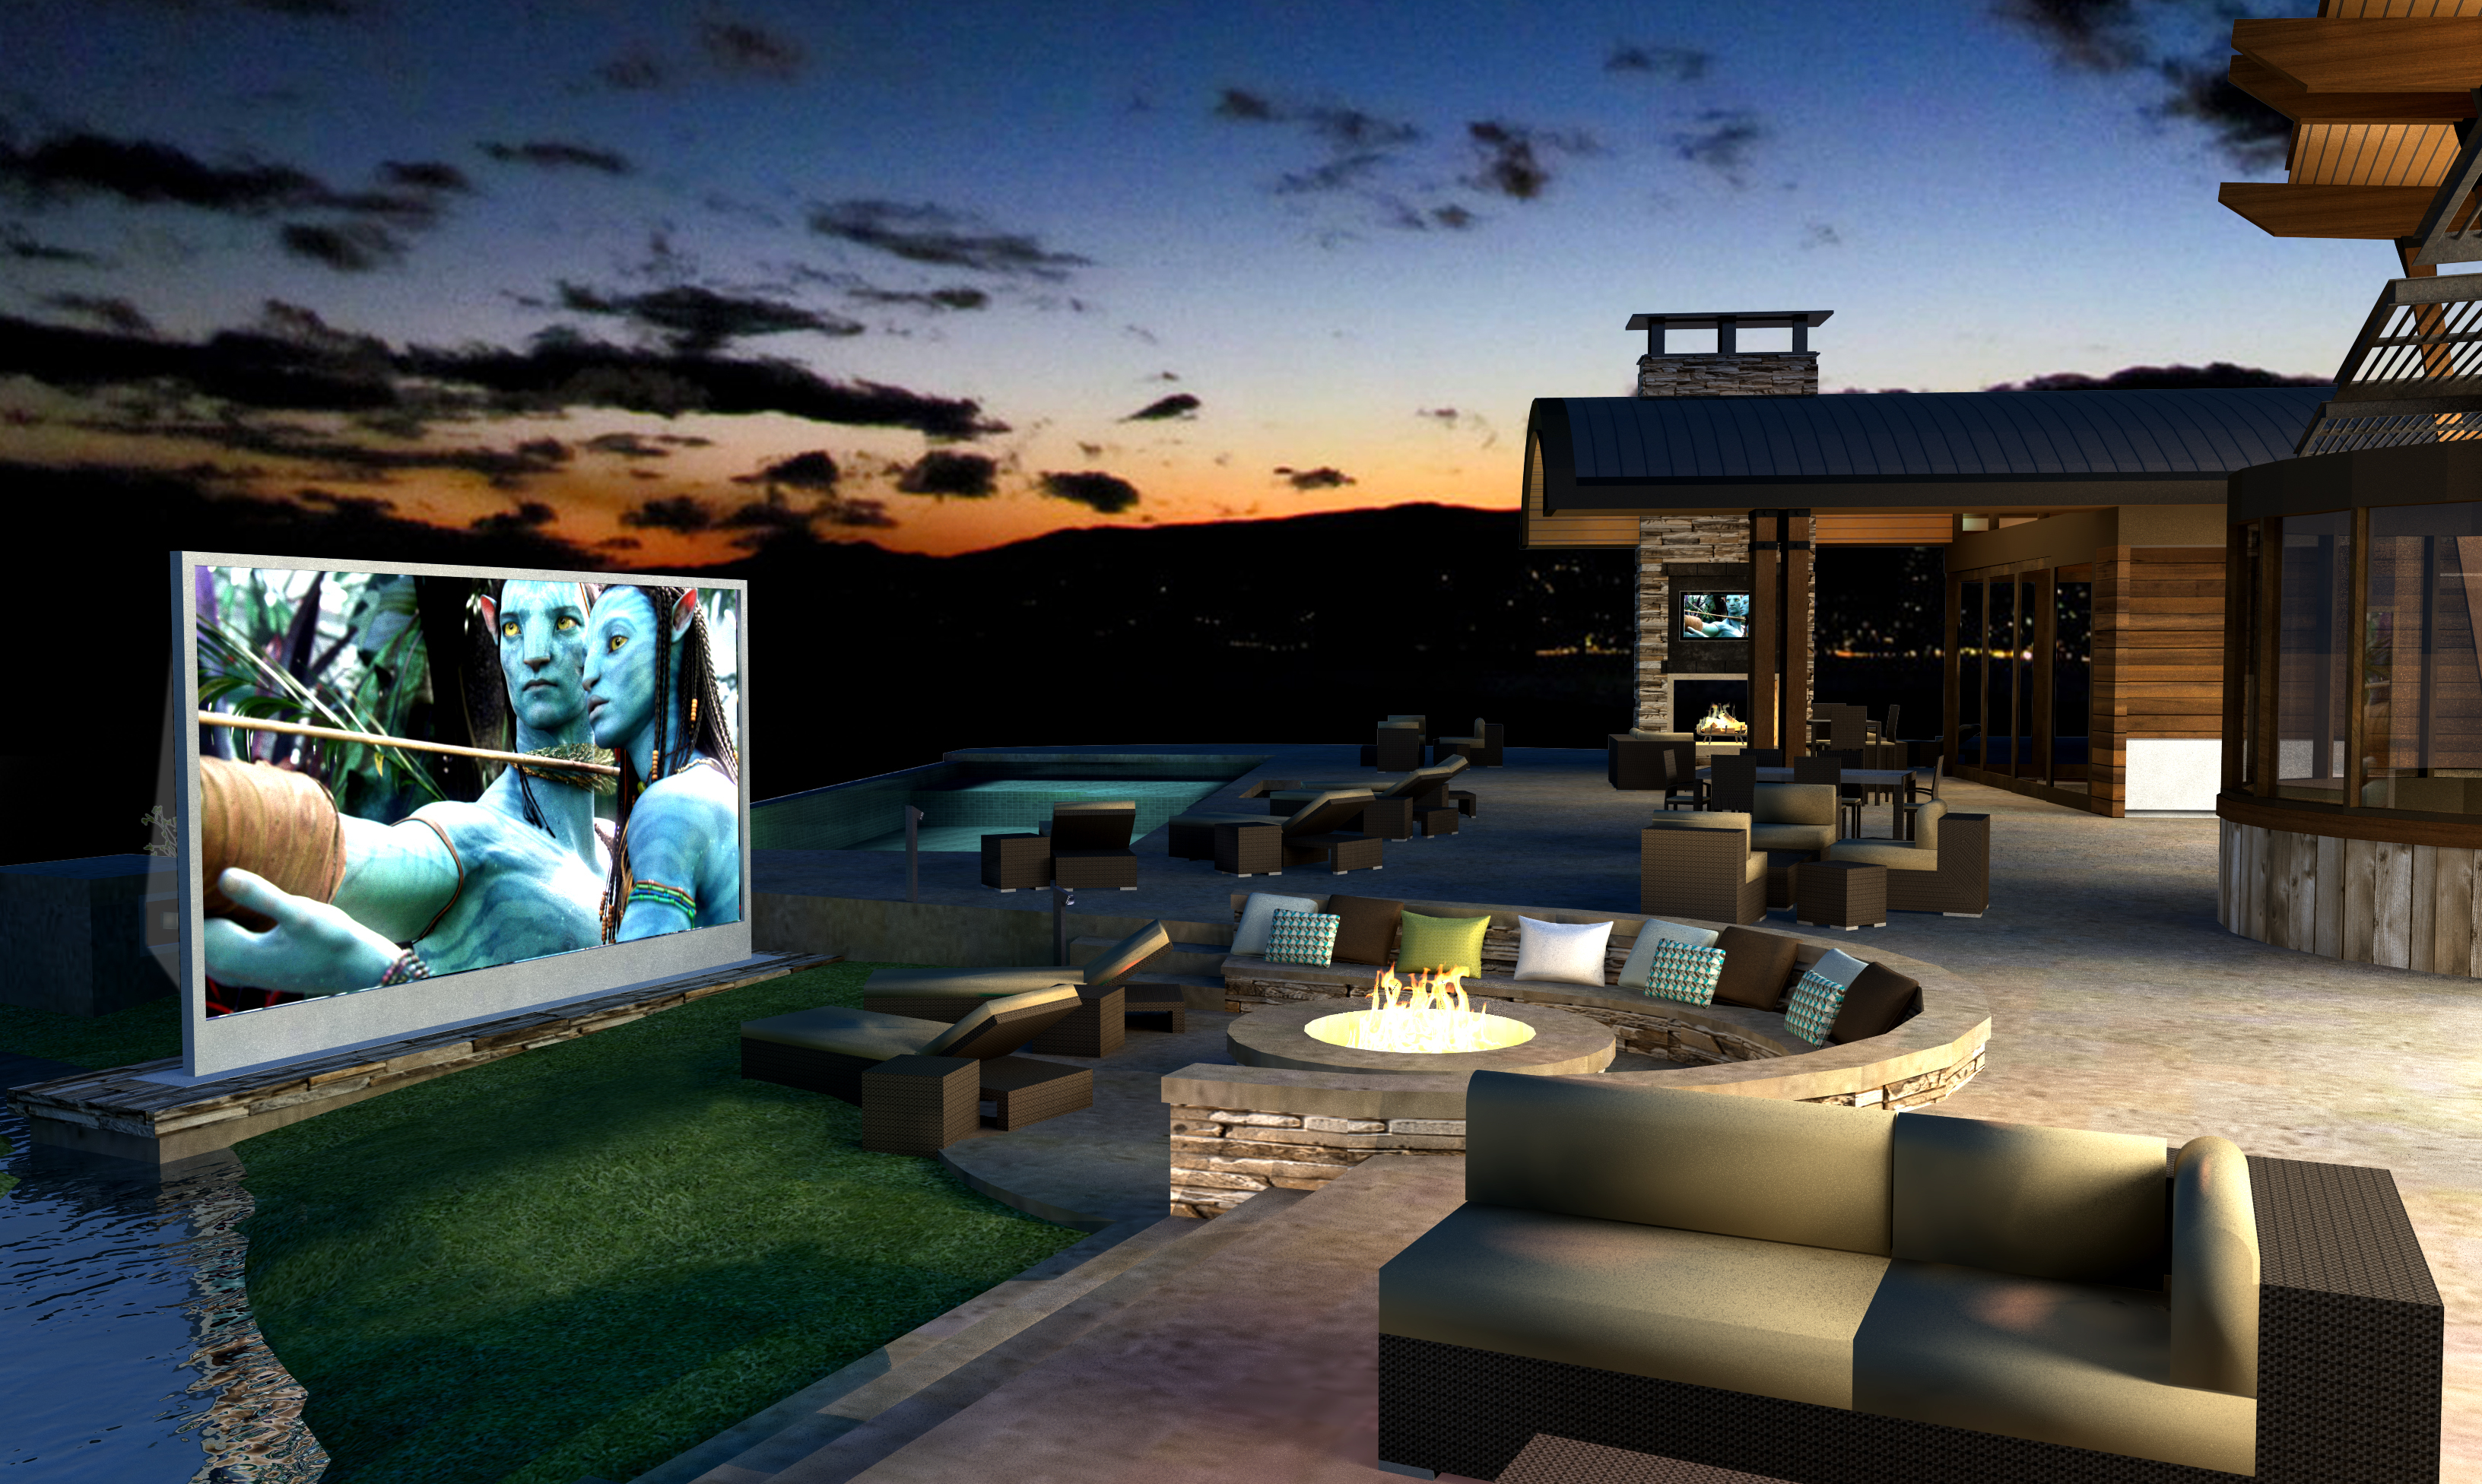 5 Outdoor Home Theater Ideas Festival Du Panier pertaining to 14 Clever Ideas How to Make Backyard Theater Ideas